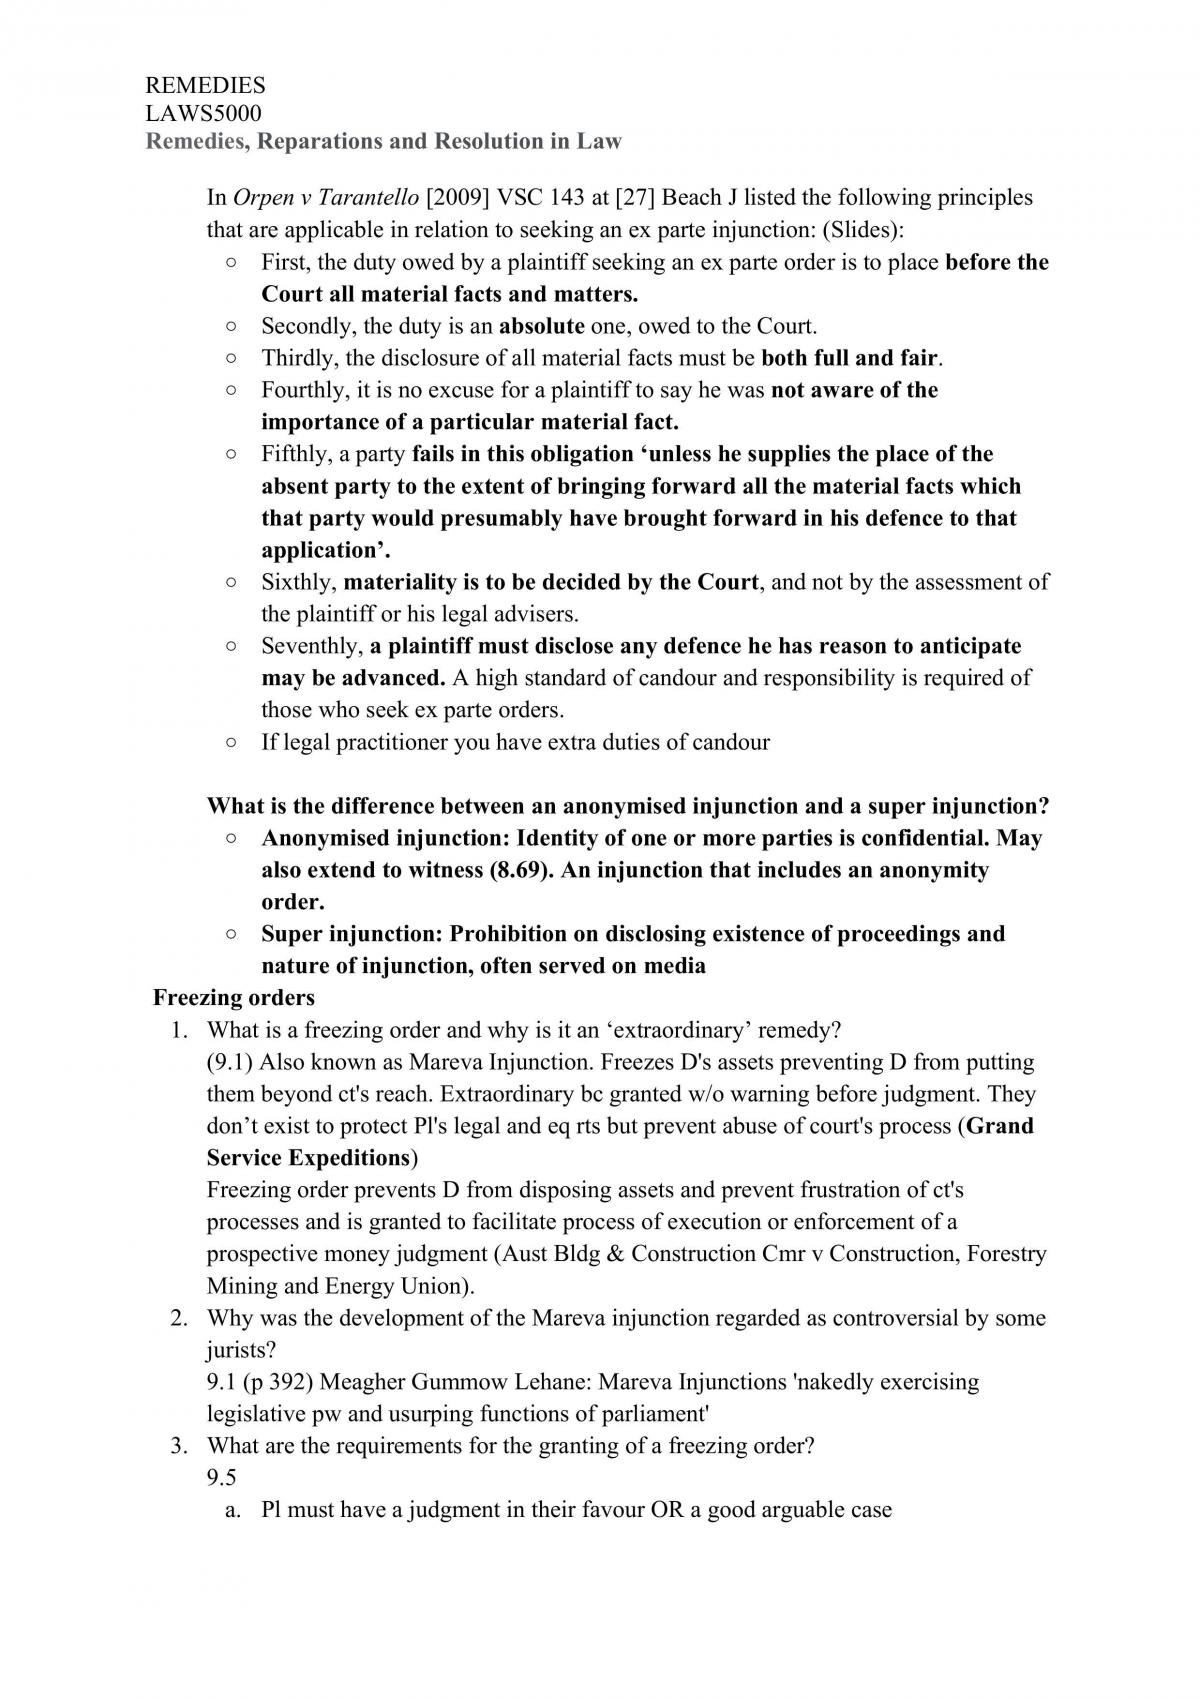 Remedies in Law Revisiable Notes  - Page 35